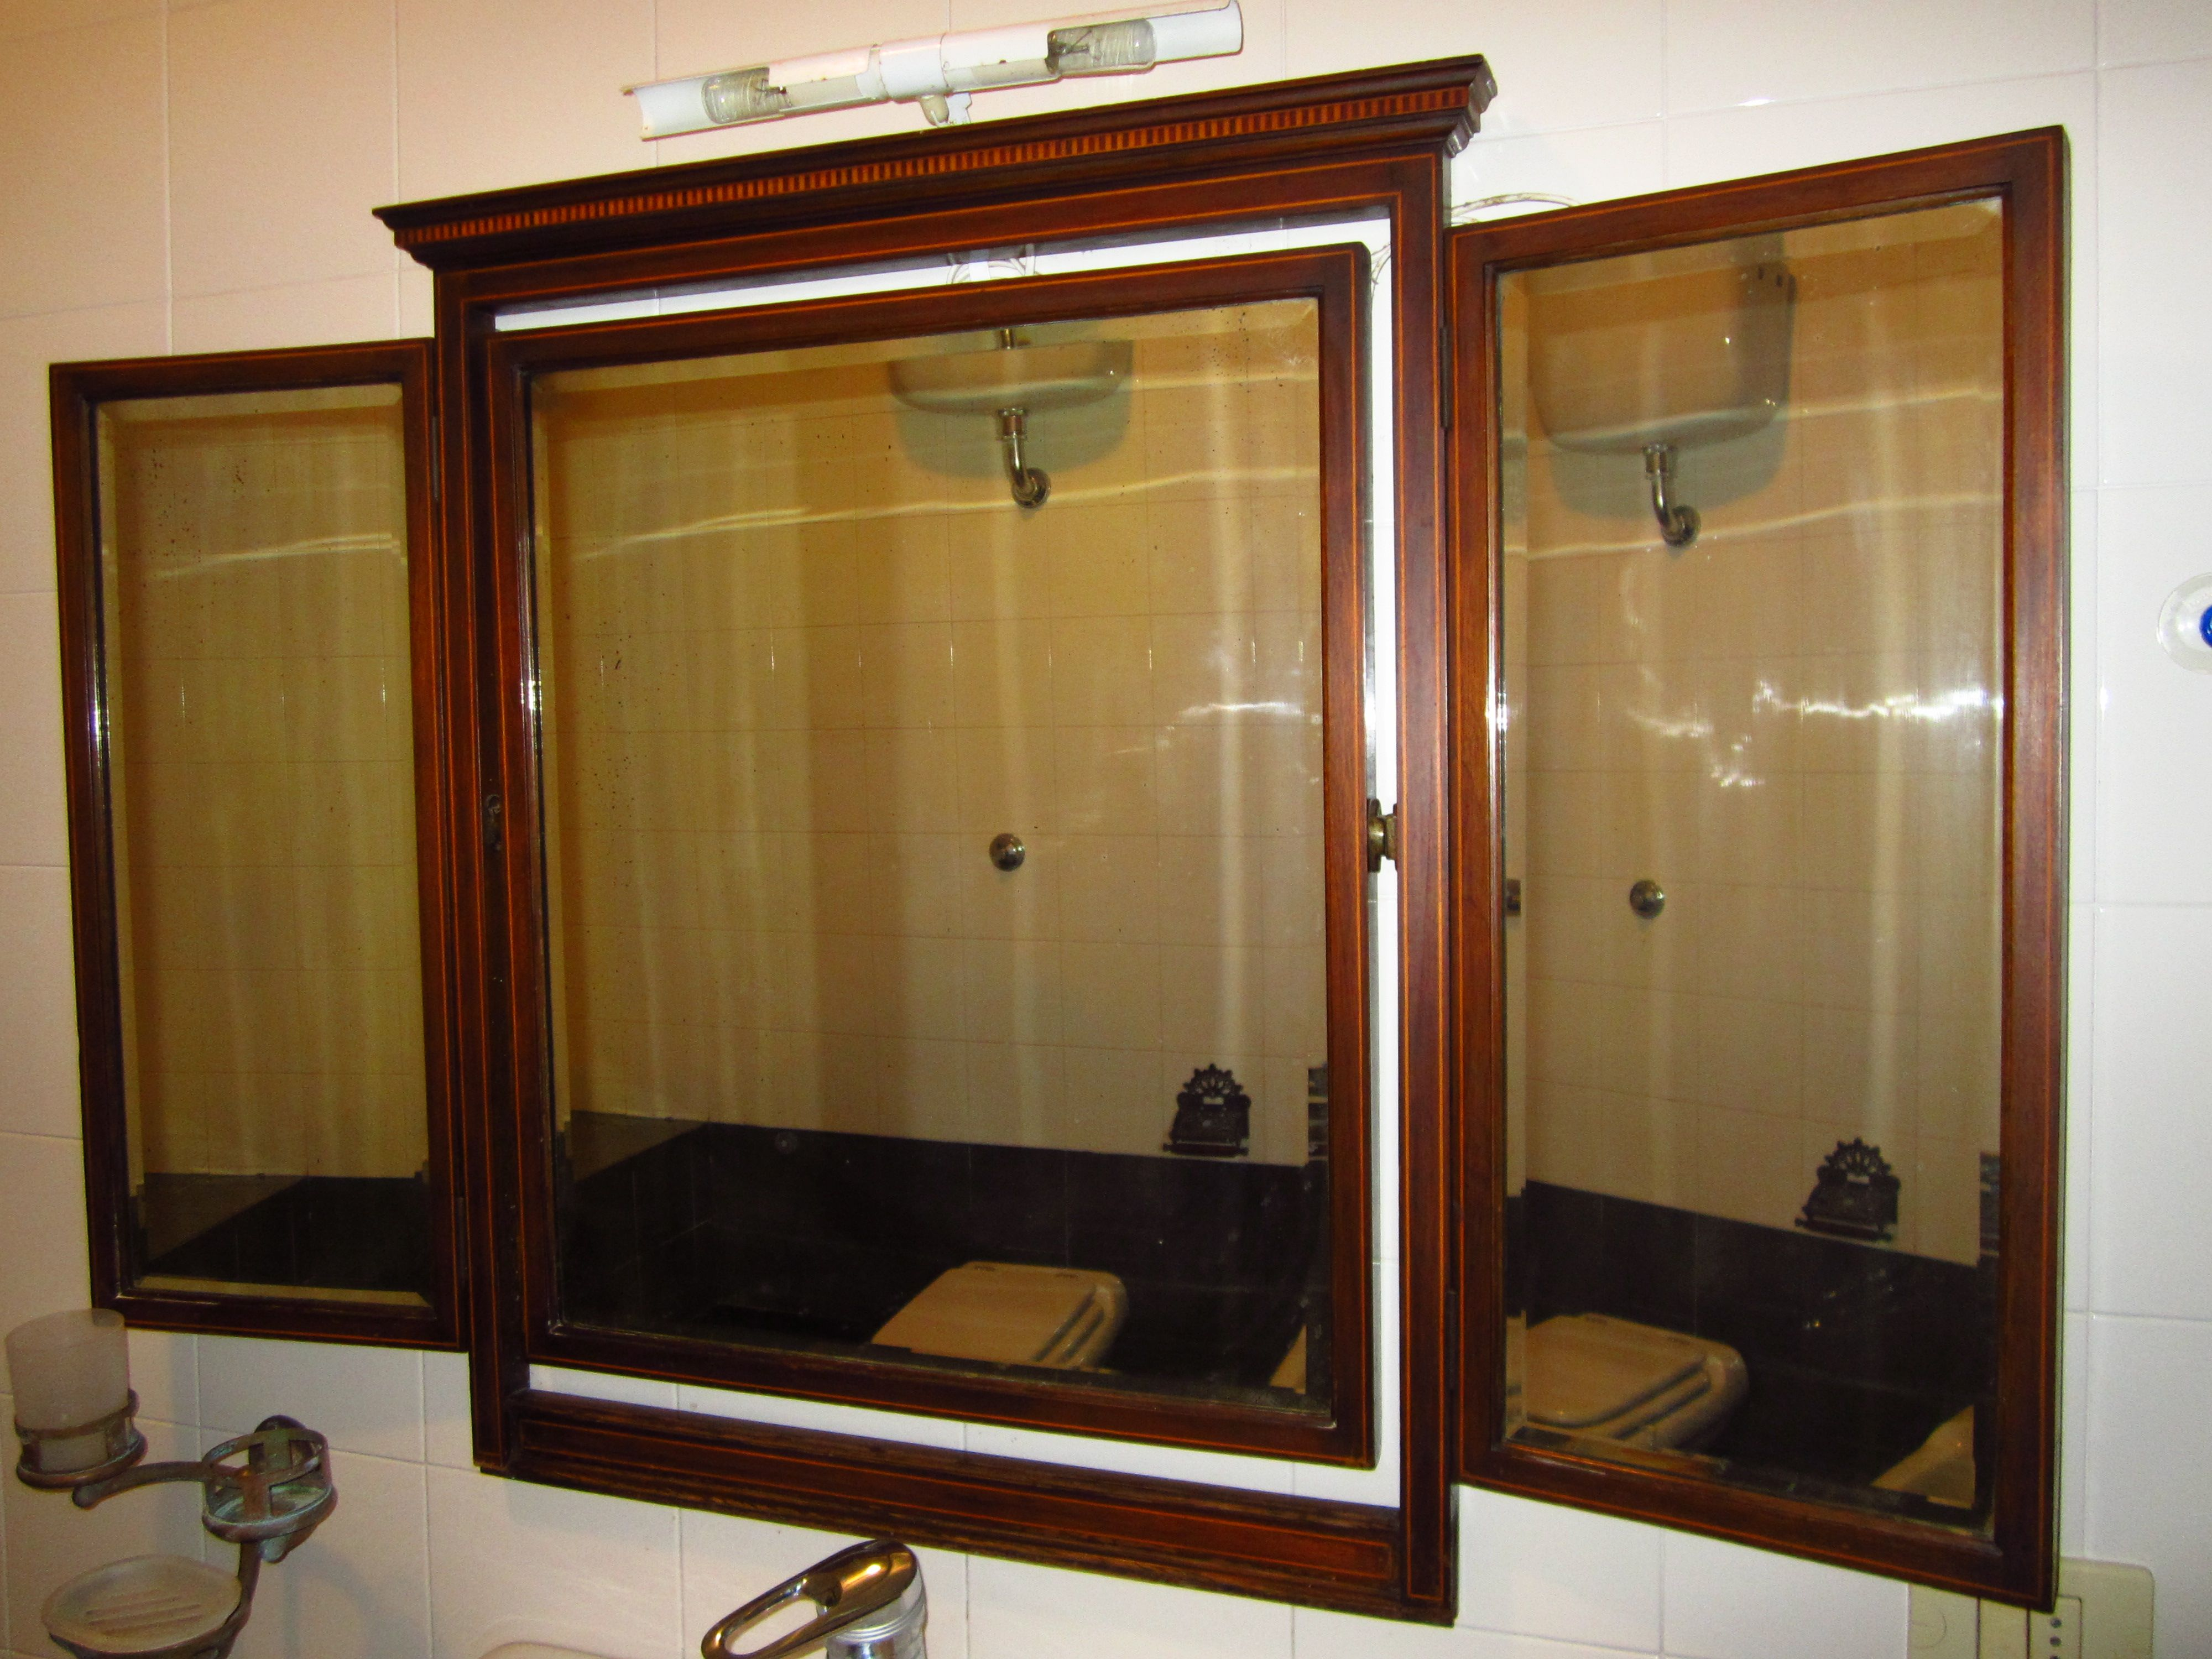 Beautiful mirror triple edwardian bathroom mirror for the home